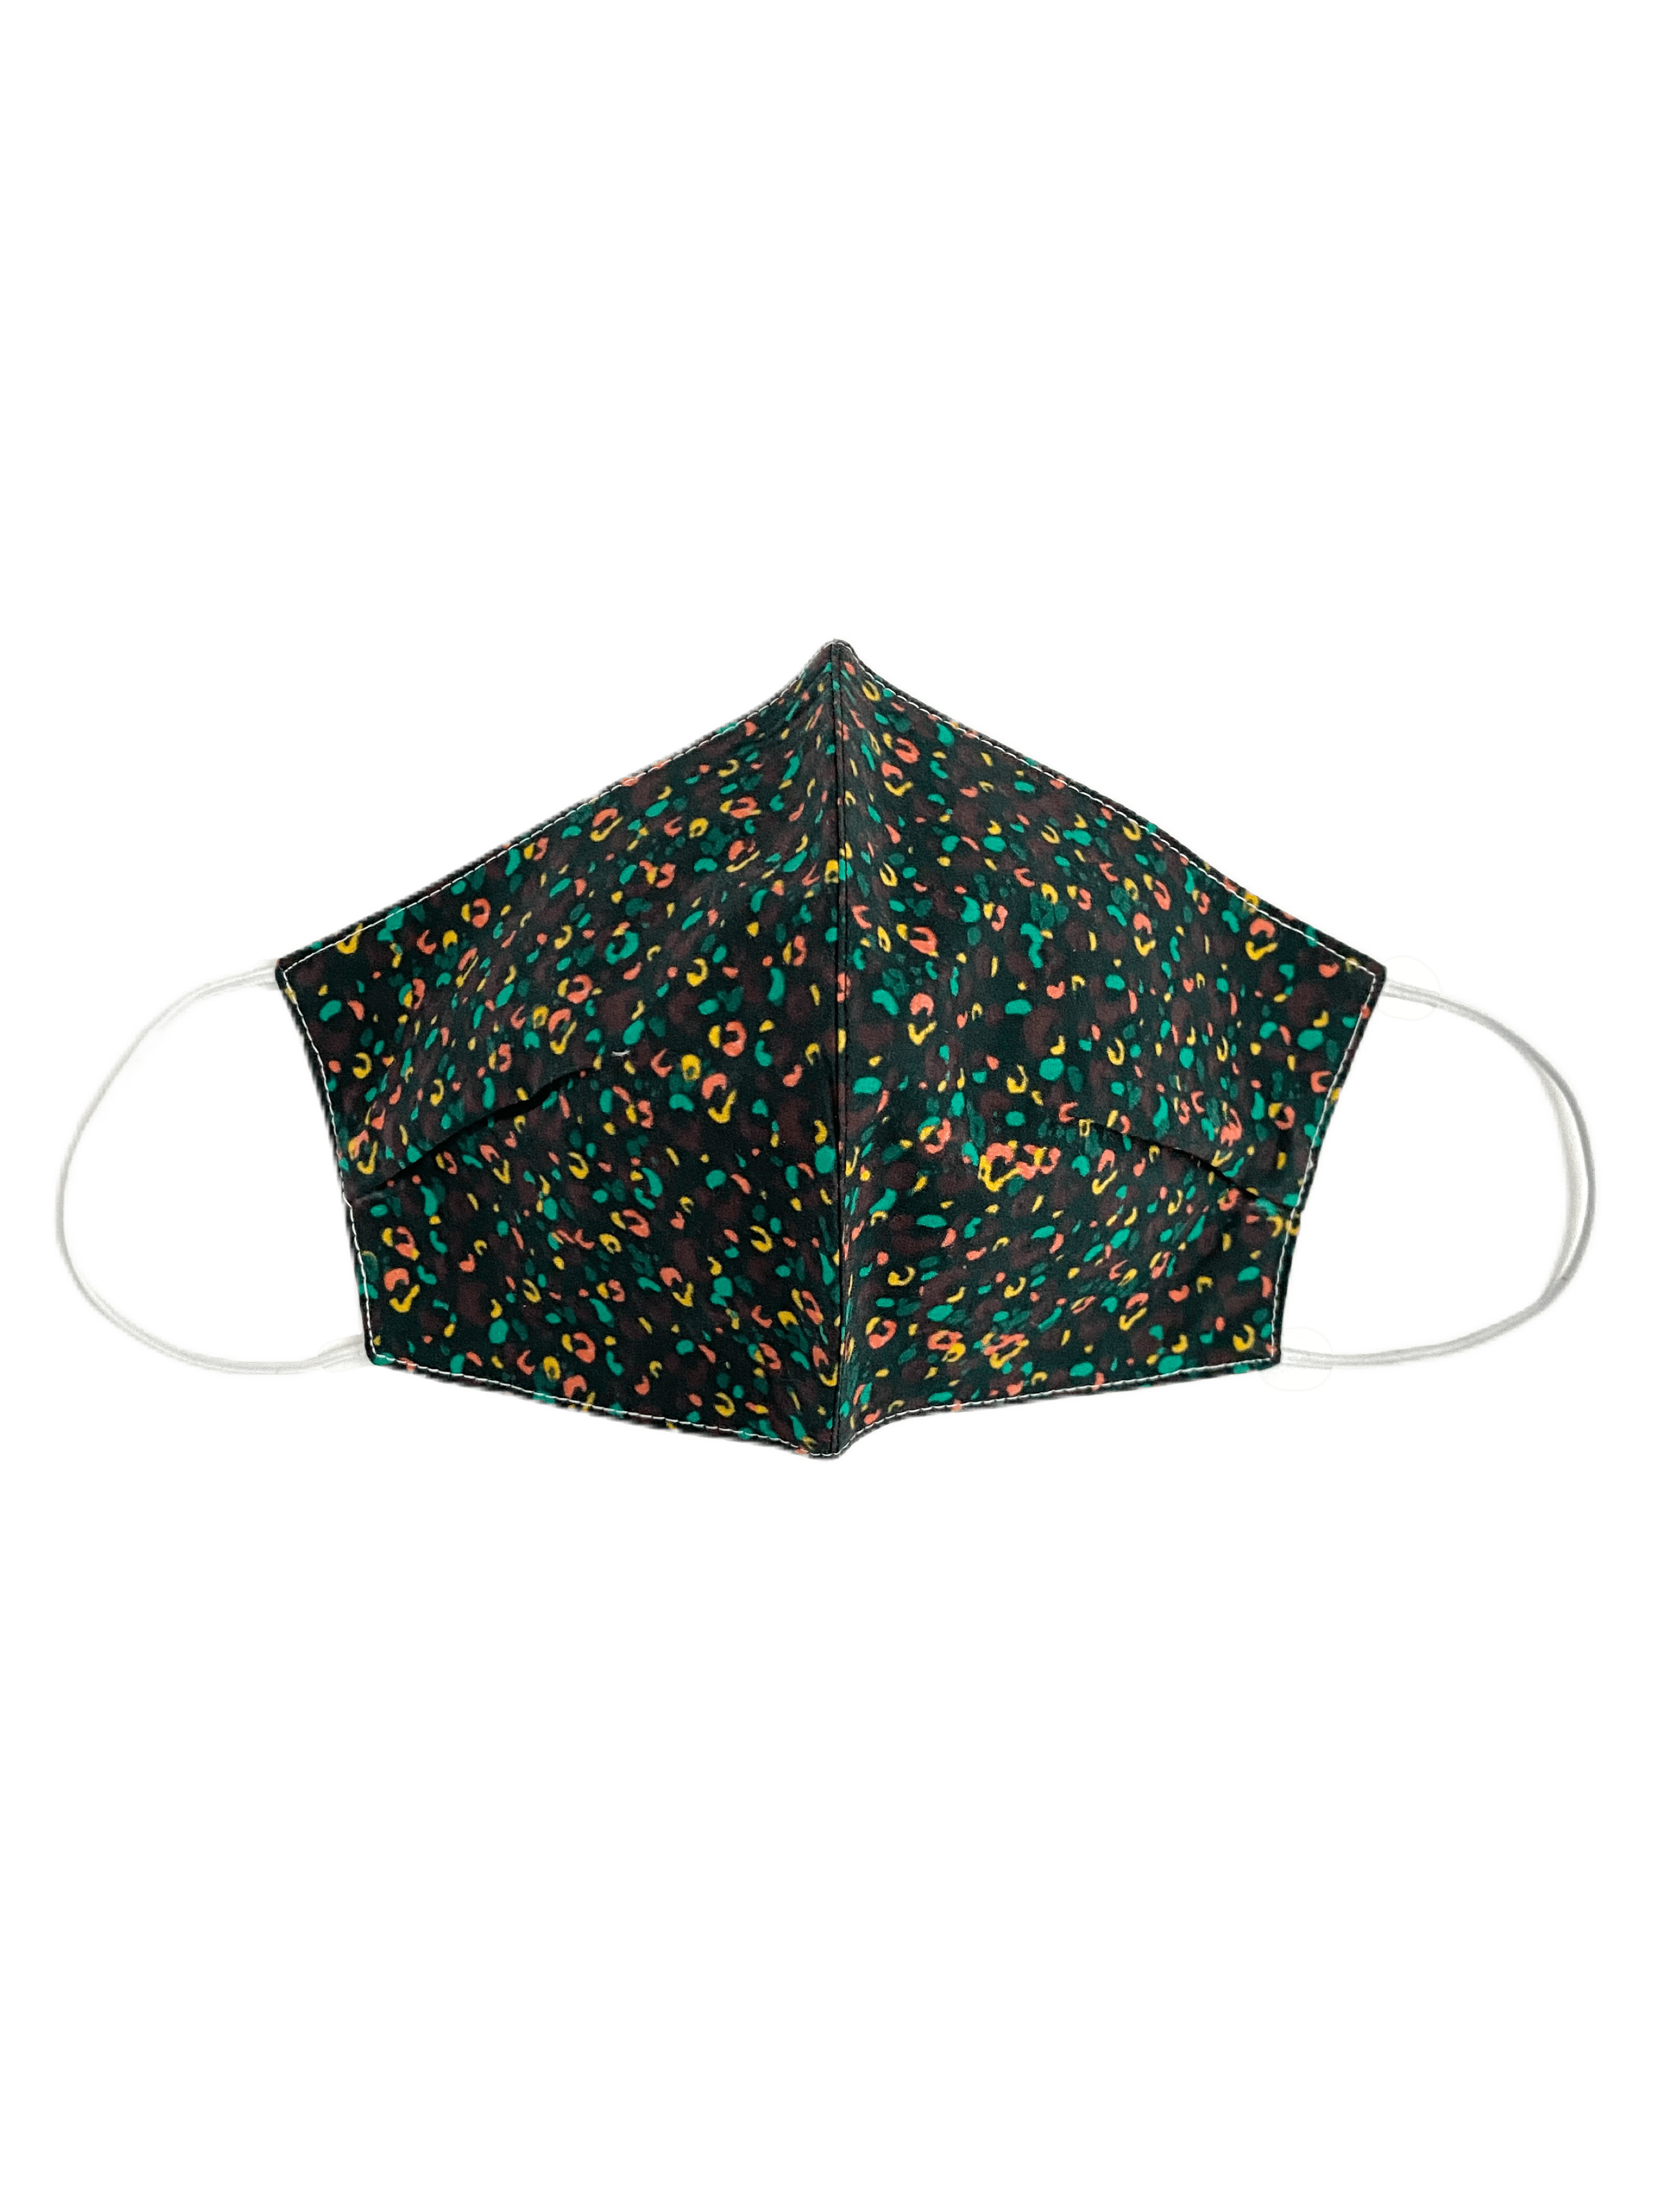 Printed Cotton Fabric Face Masks with filter pocket